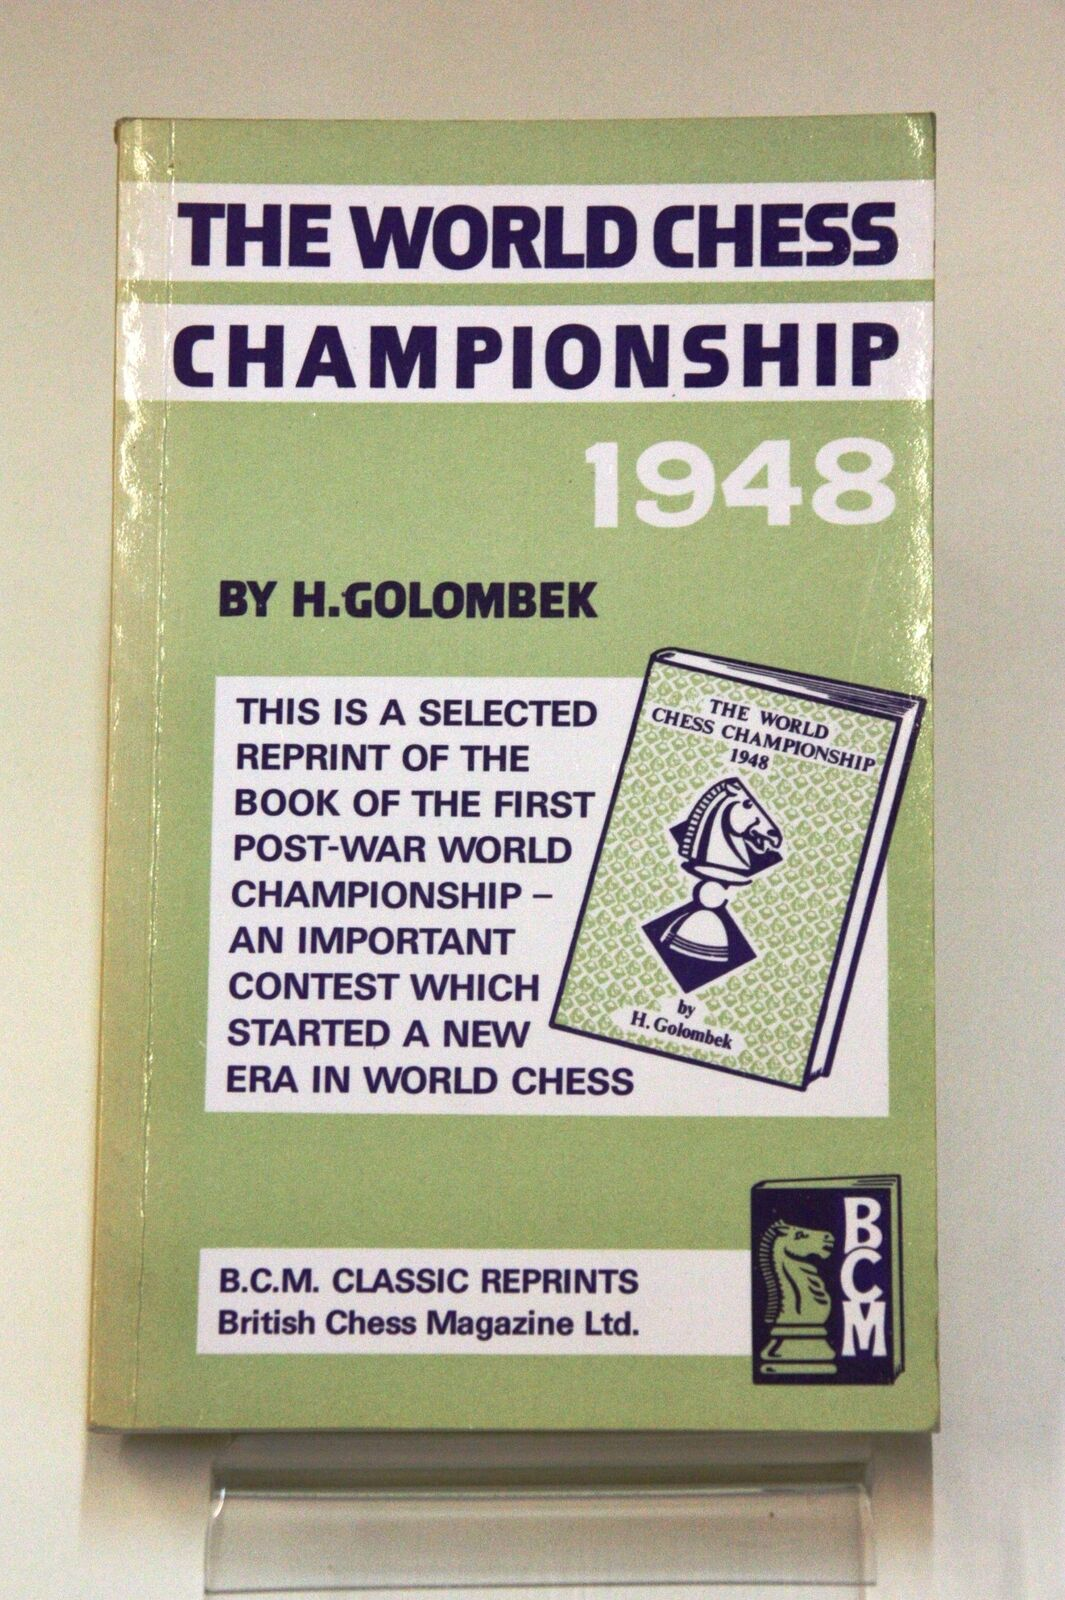 B.C.M. Classic Reprints, number 20: World Chess Championship 1948, Golombek, Harold, 01-03-1982 (1949). ISBN 978-0-900846-35-9.